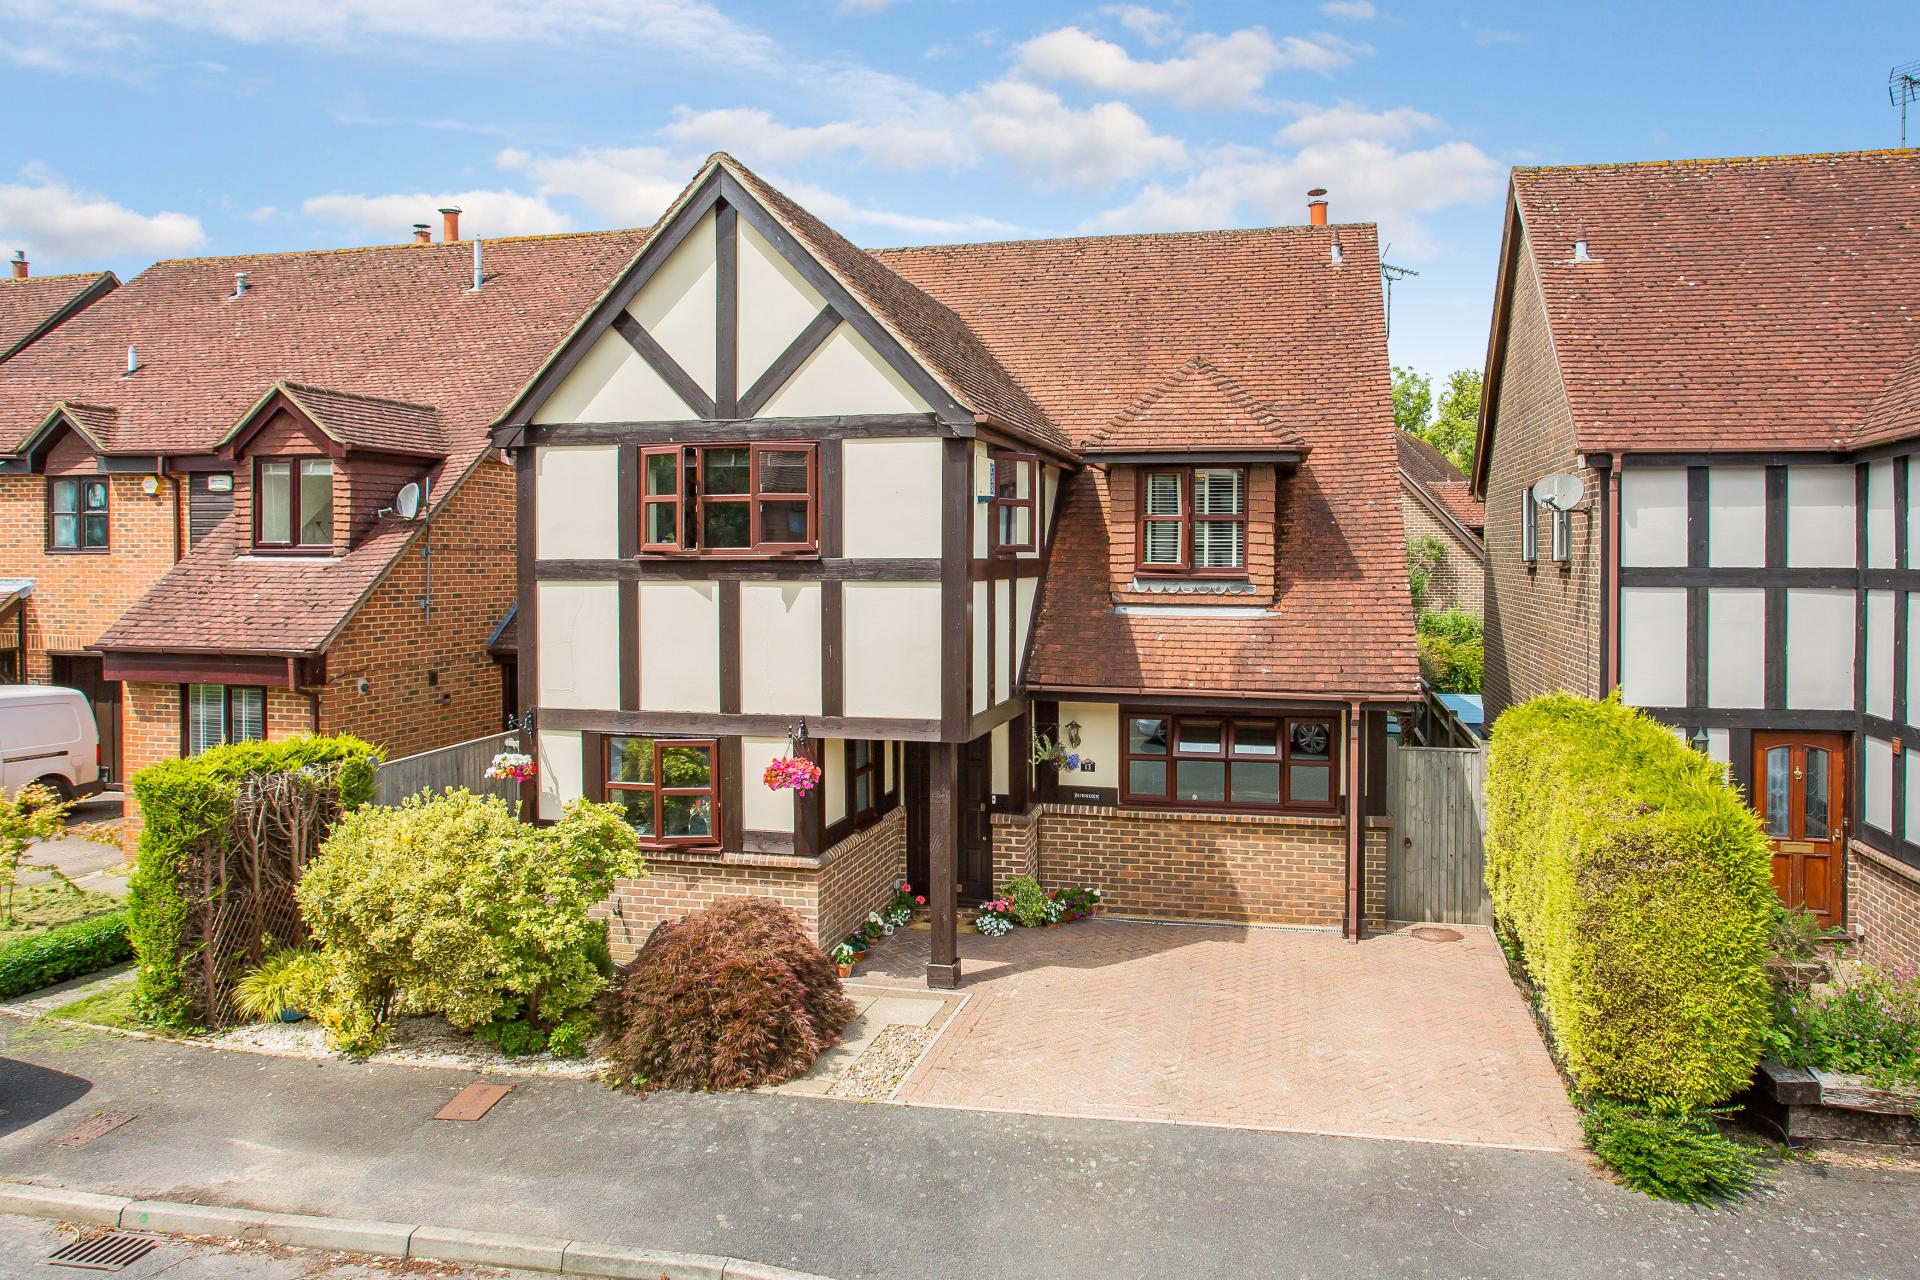 4 bed family home in Crowborough, East Sussex